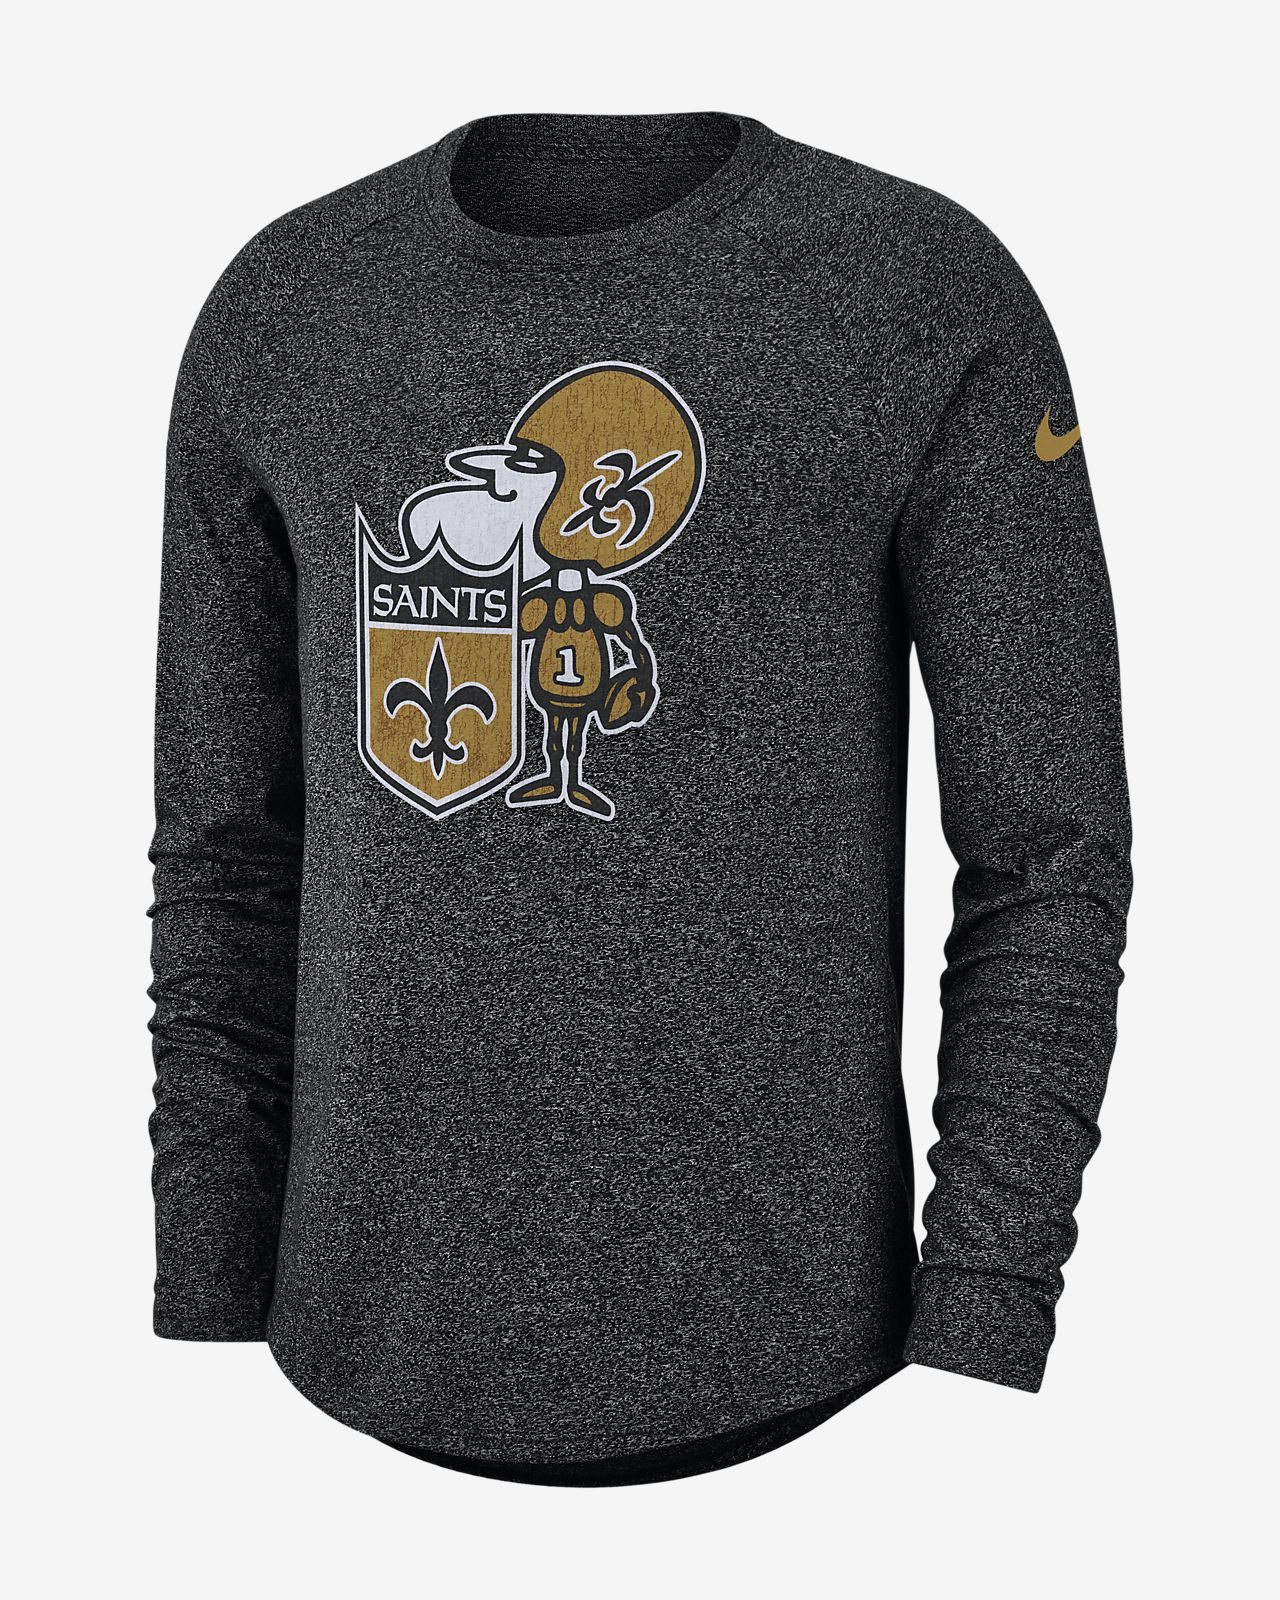 Nike Historic (NFL Saints) Men's Long-Sleeve T-Shirt